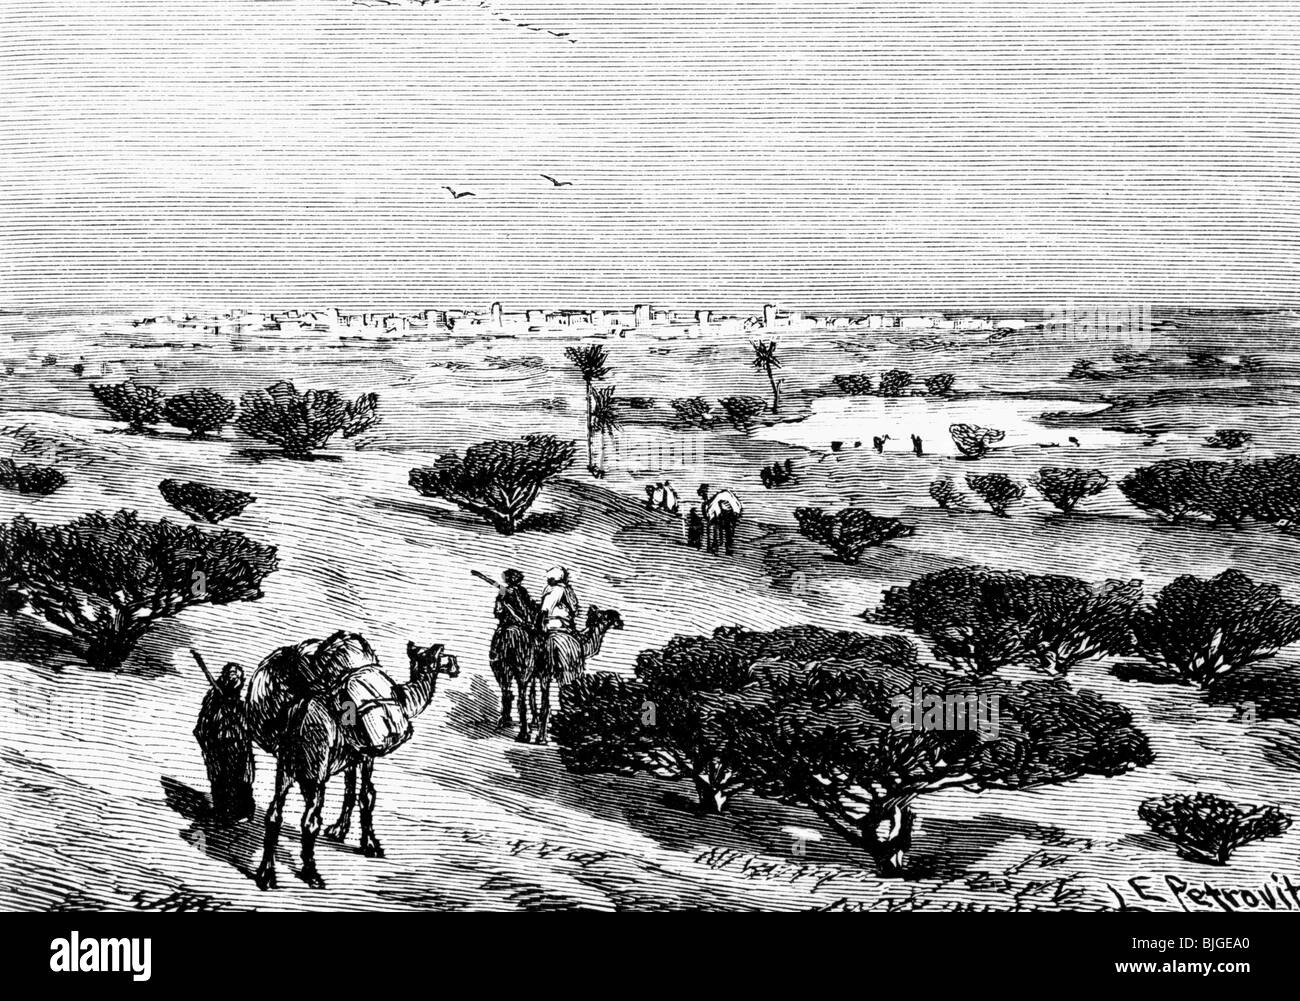 geography / travel, Mali, Timbuktu, view, circa 1860, Additional-Rights-Clearances-NA - Stock Image